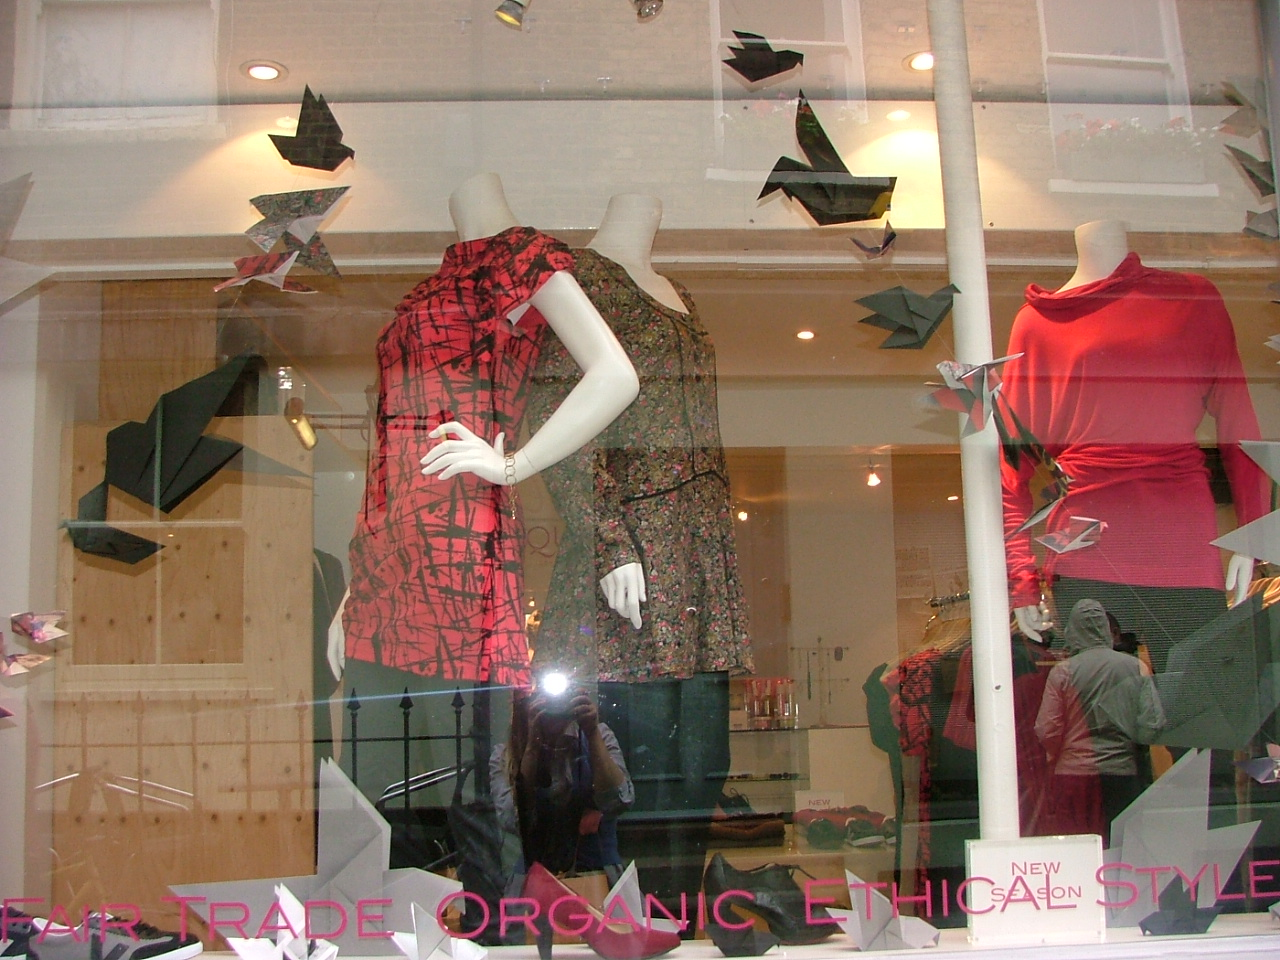 35 Fair Trade Ethical Clothing Brands Betting Against Fast Fashion 1